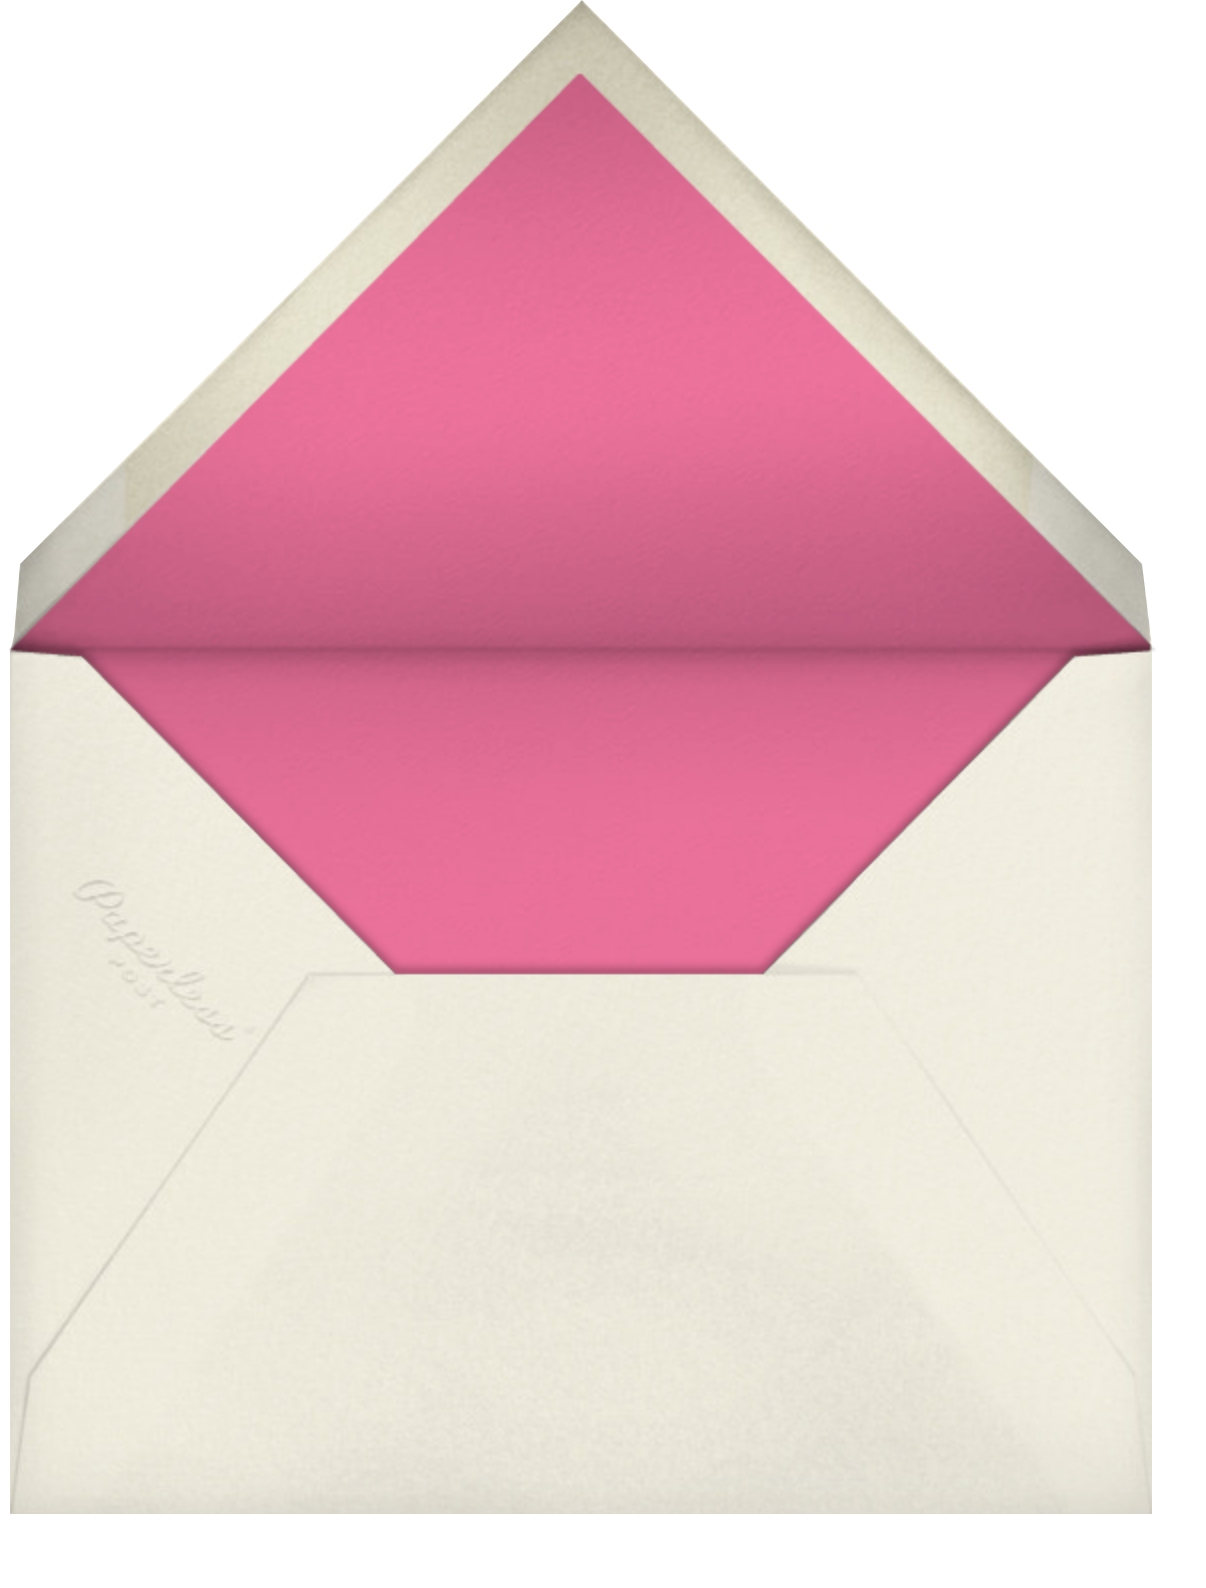 Glimmering Greetings - kate spade new york - Holiday cards - envelope back